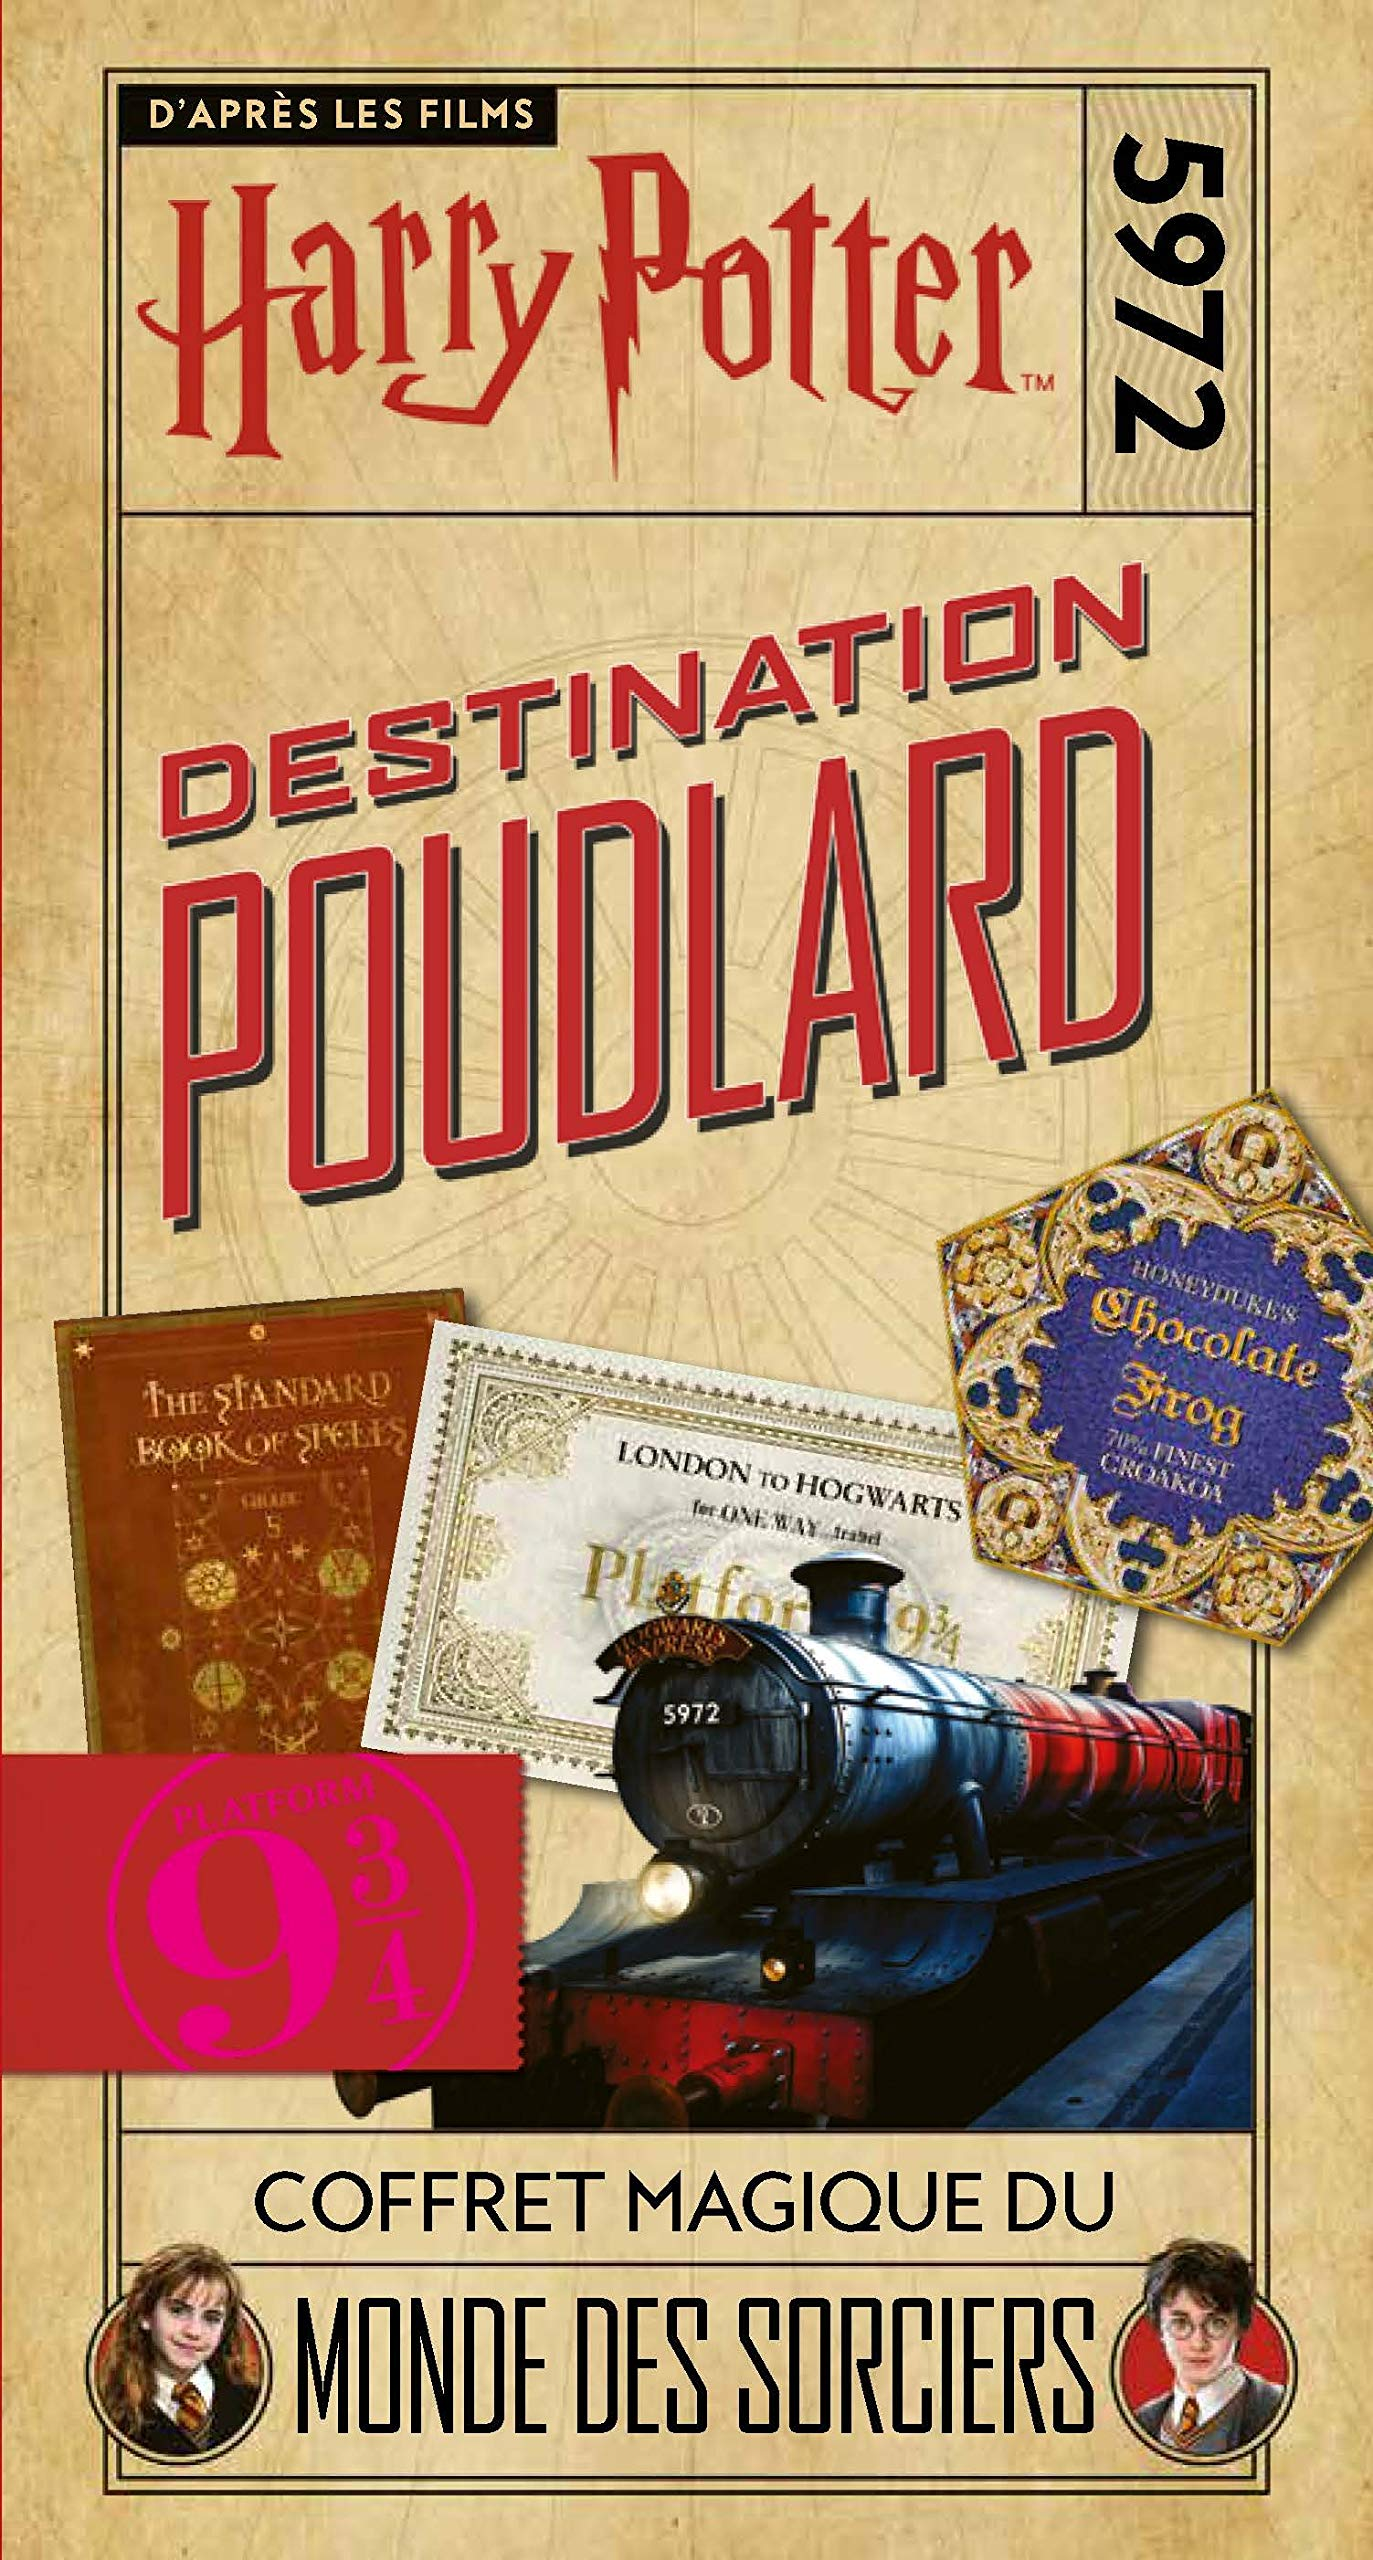 Harry Potter - Destination Poudlard de Collectif